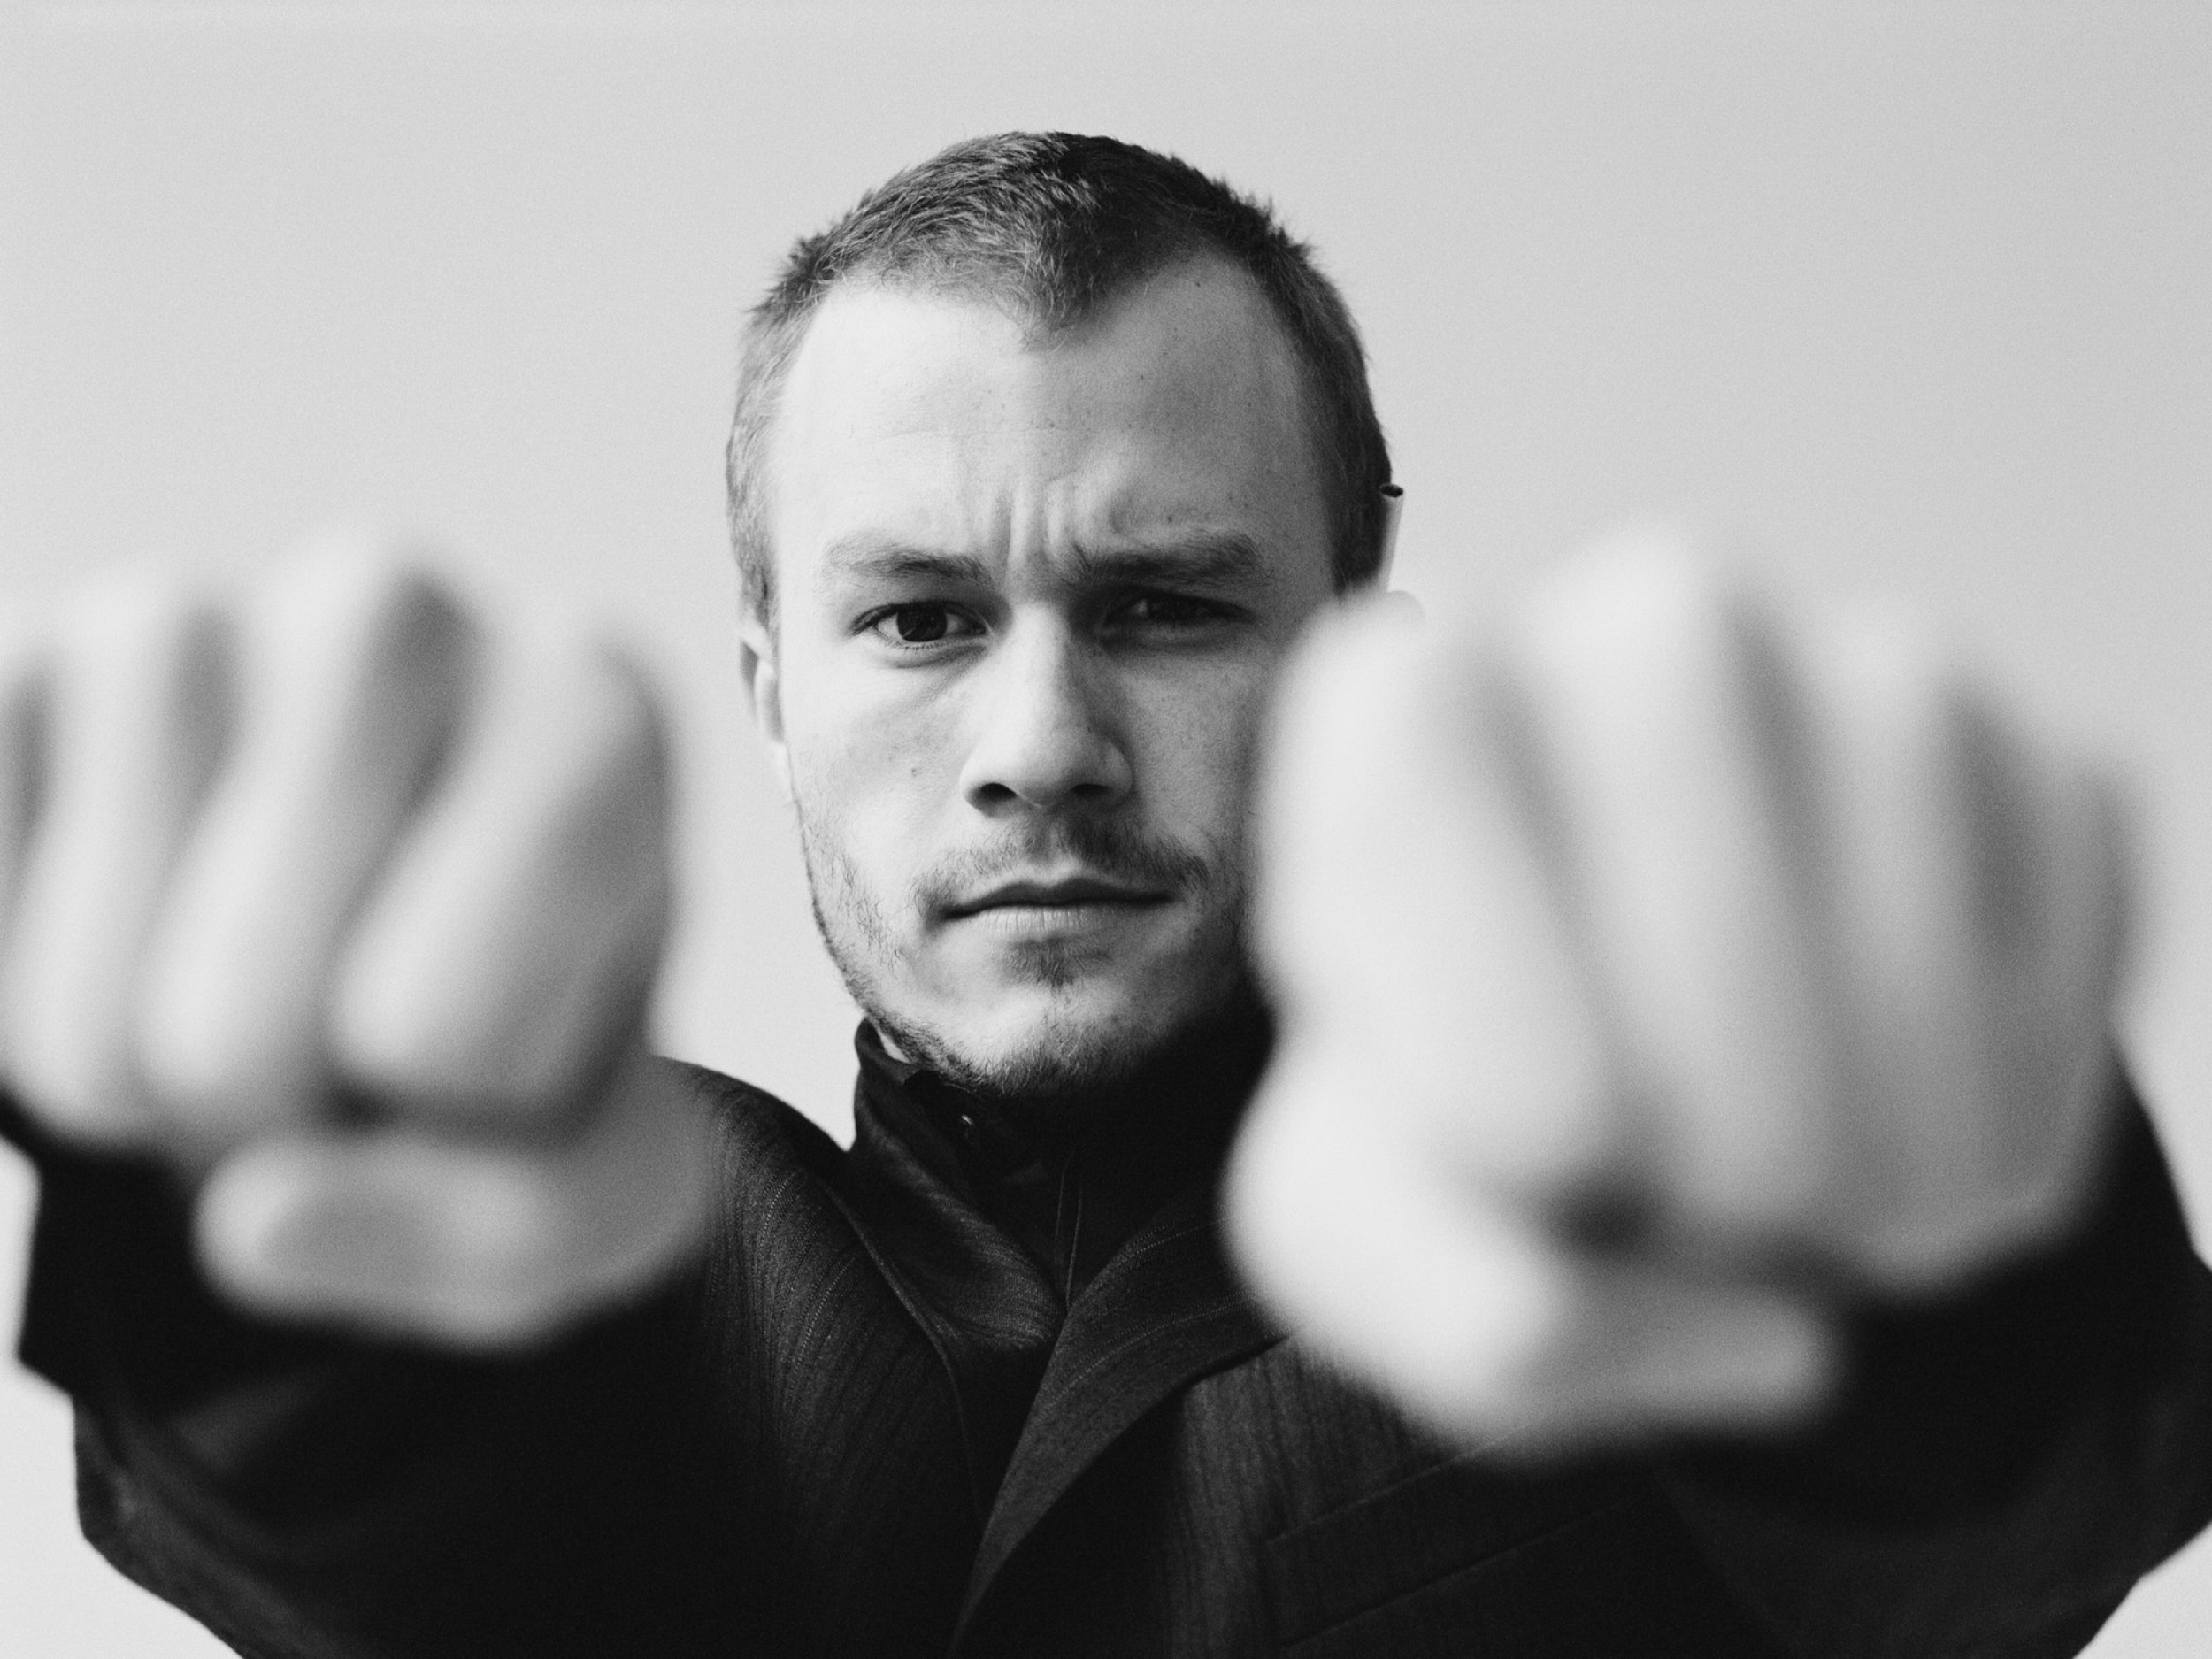 suit_grayscale_heath_ledger_monochrome_1920x2400_wallpaper_Wallpaper_2560x1920_www.wallpaperswa.com.jpg